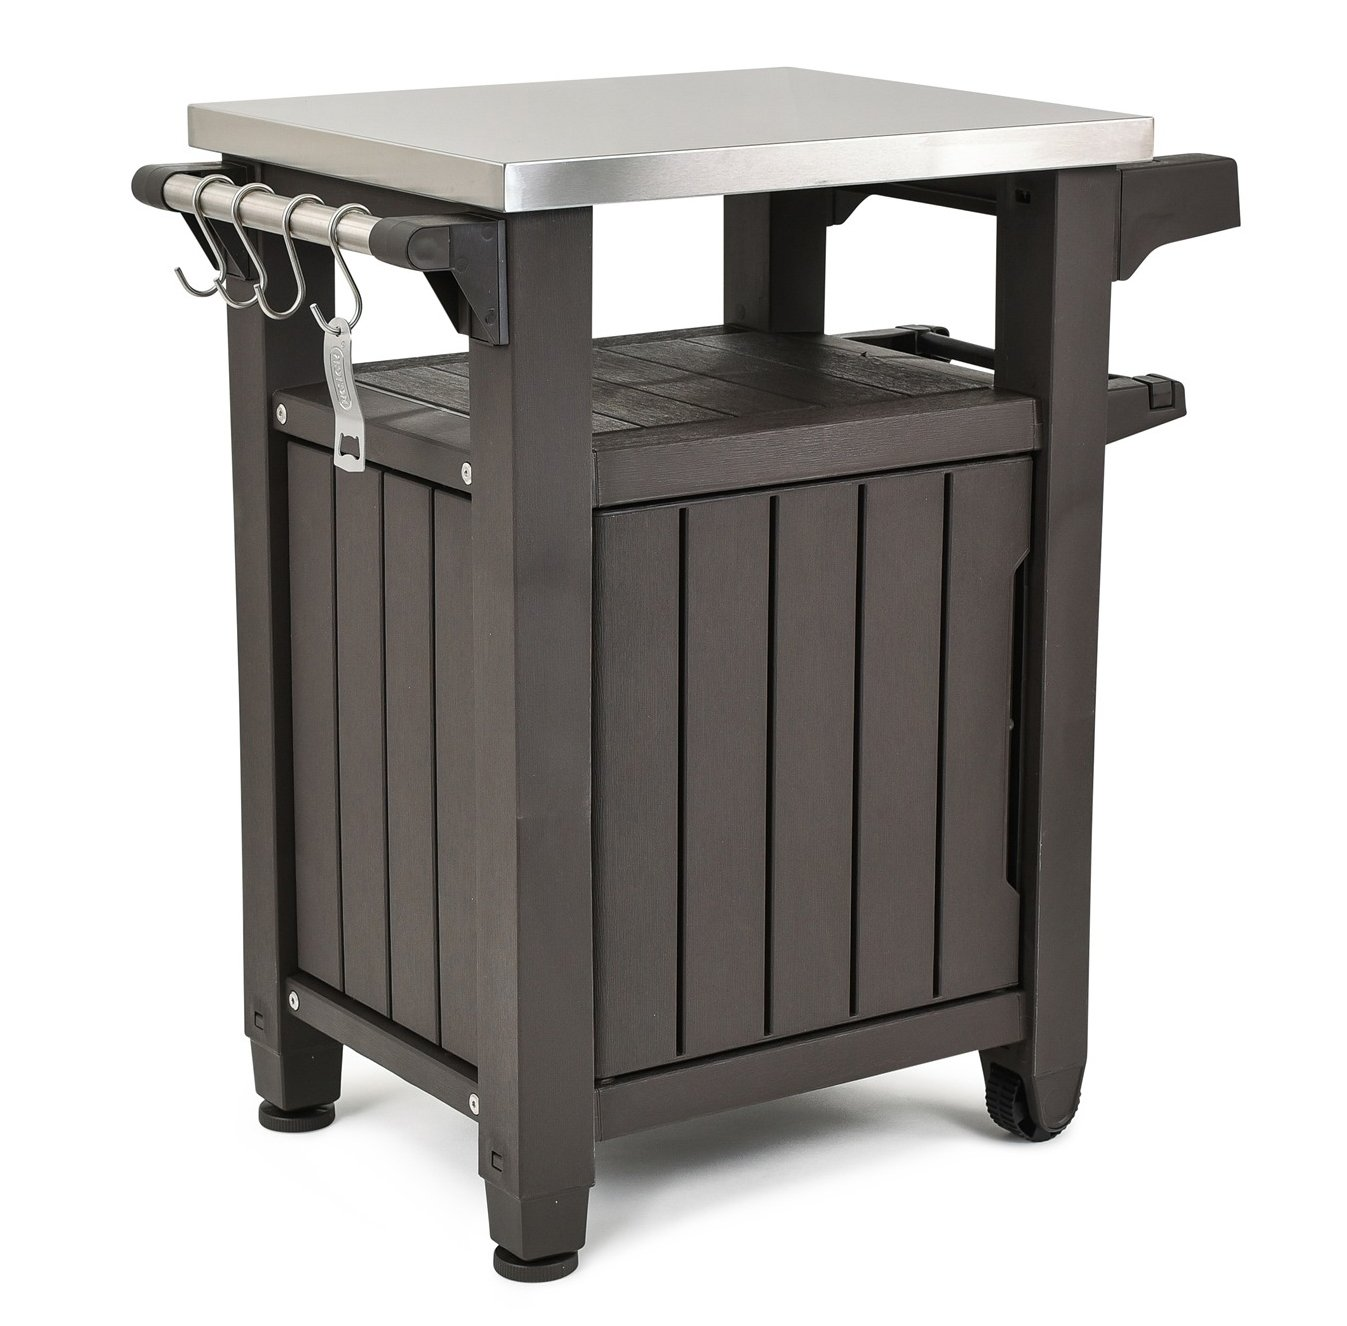 Indoor Outdoor BBQ  Prep Station with Metal Top $95.99 (Reg.$159.99)+ Free Shipping